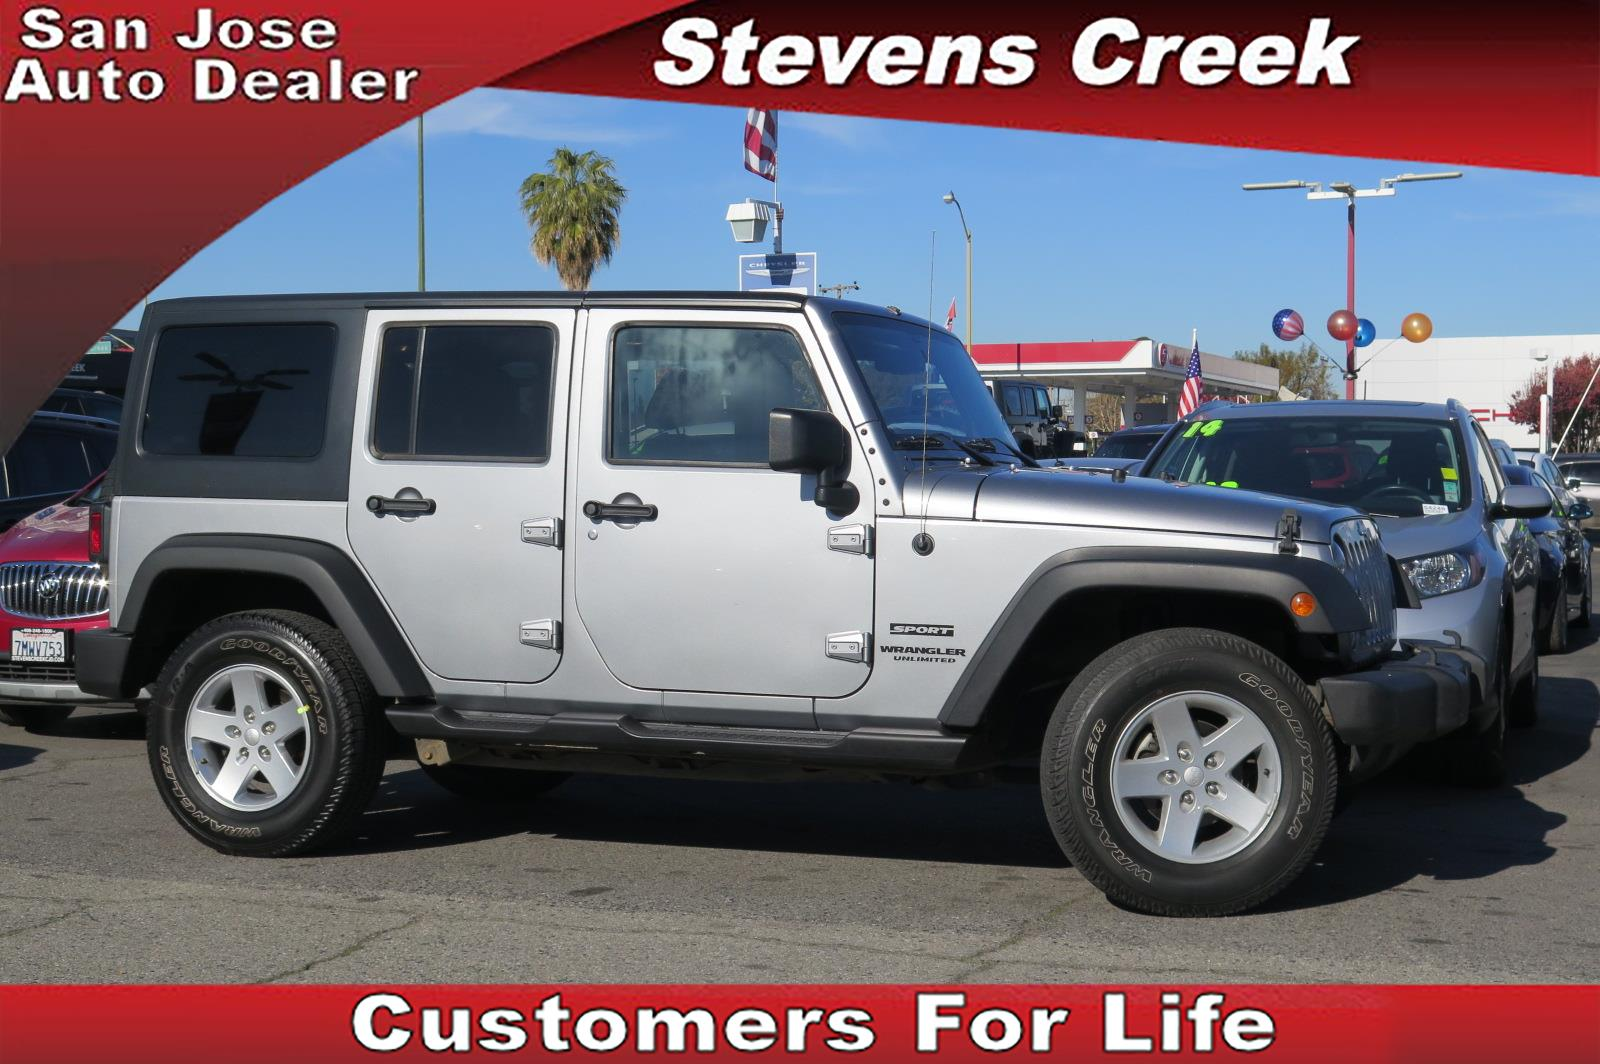 2015 JEEP WRANGLER UNLIMITED SPORT silver 36l v6 automatic previous rental 42832 miles VIN